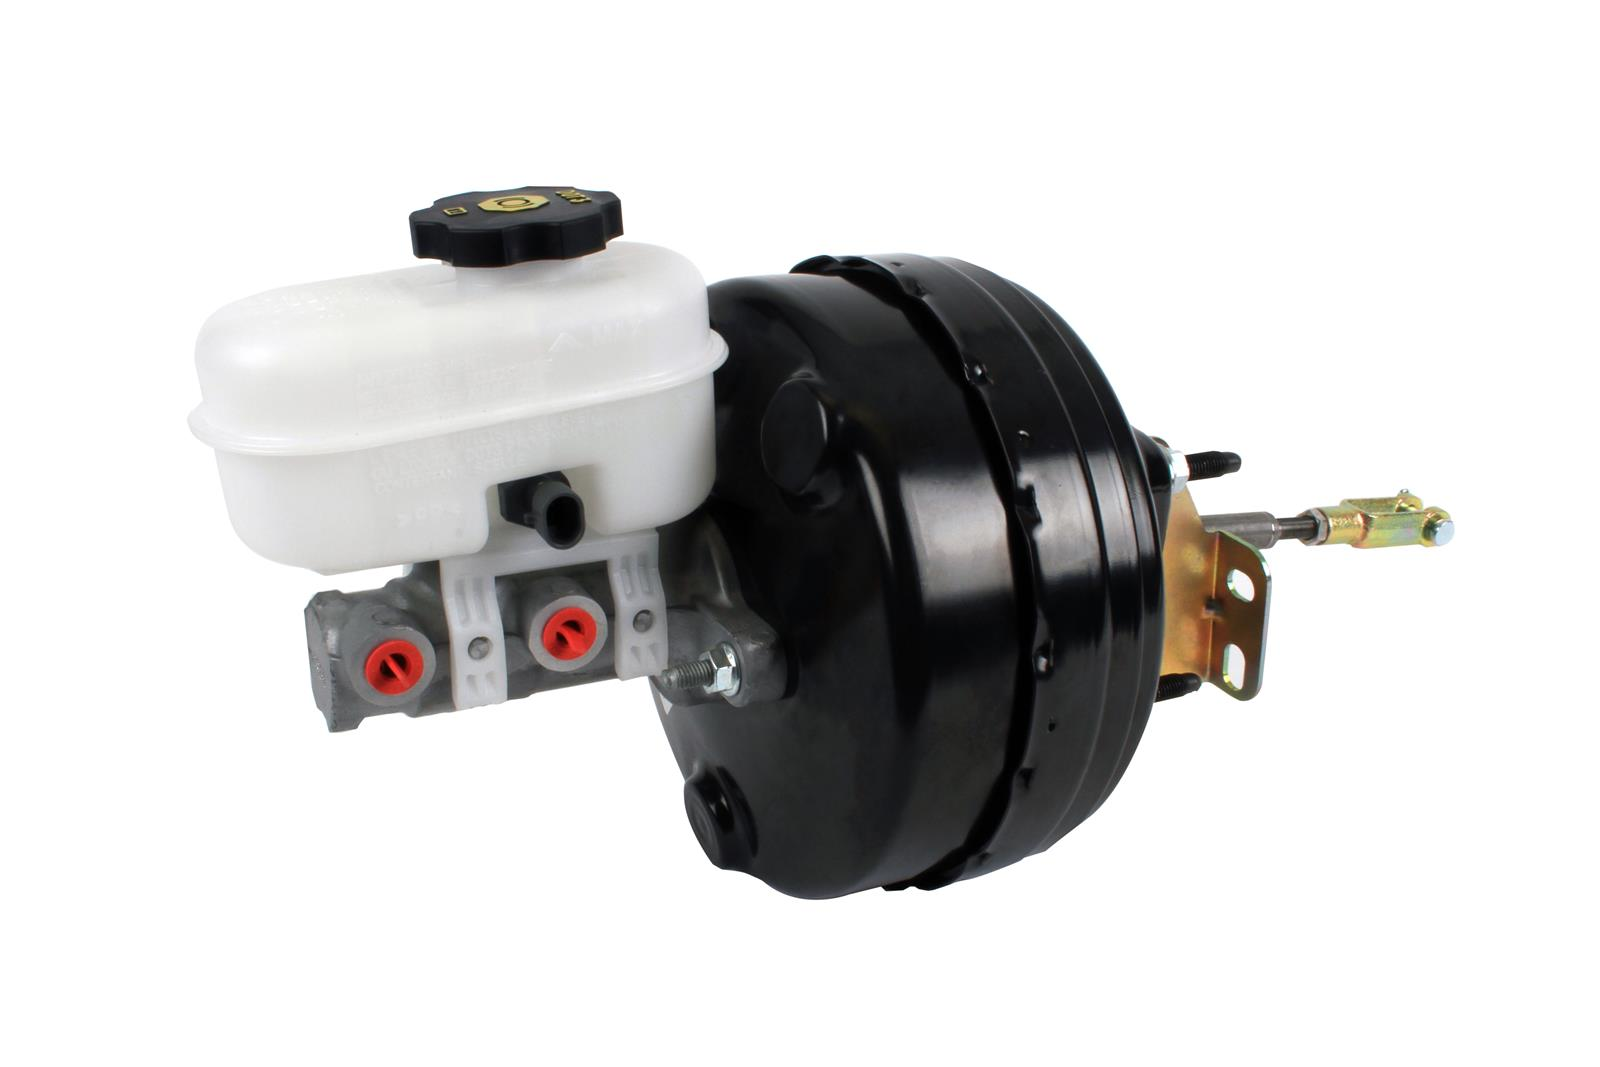 Detroit Sd Master Cylinder And Brake Booster Emblies 050106 Free Shipping On Orders Over 99 At Summit Racing